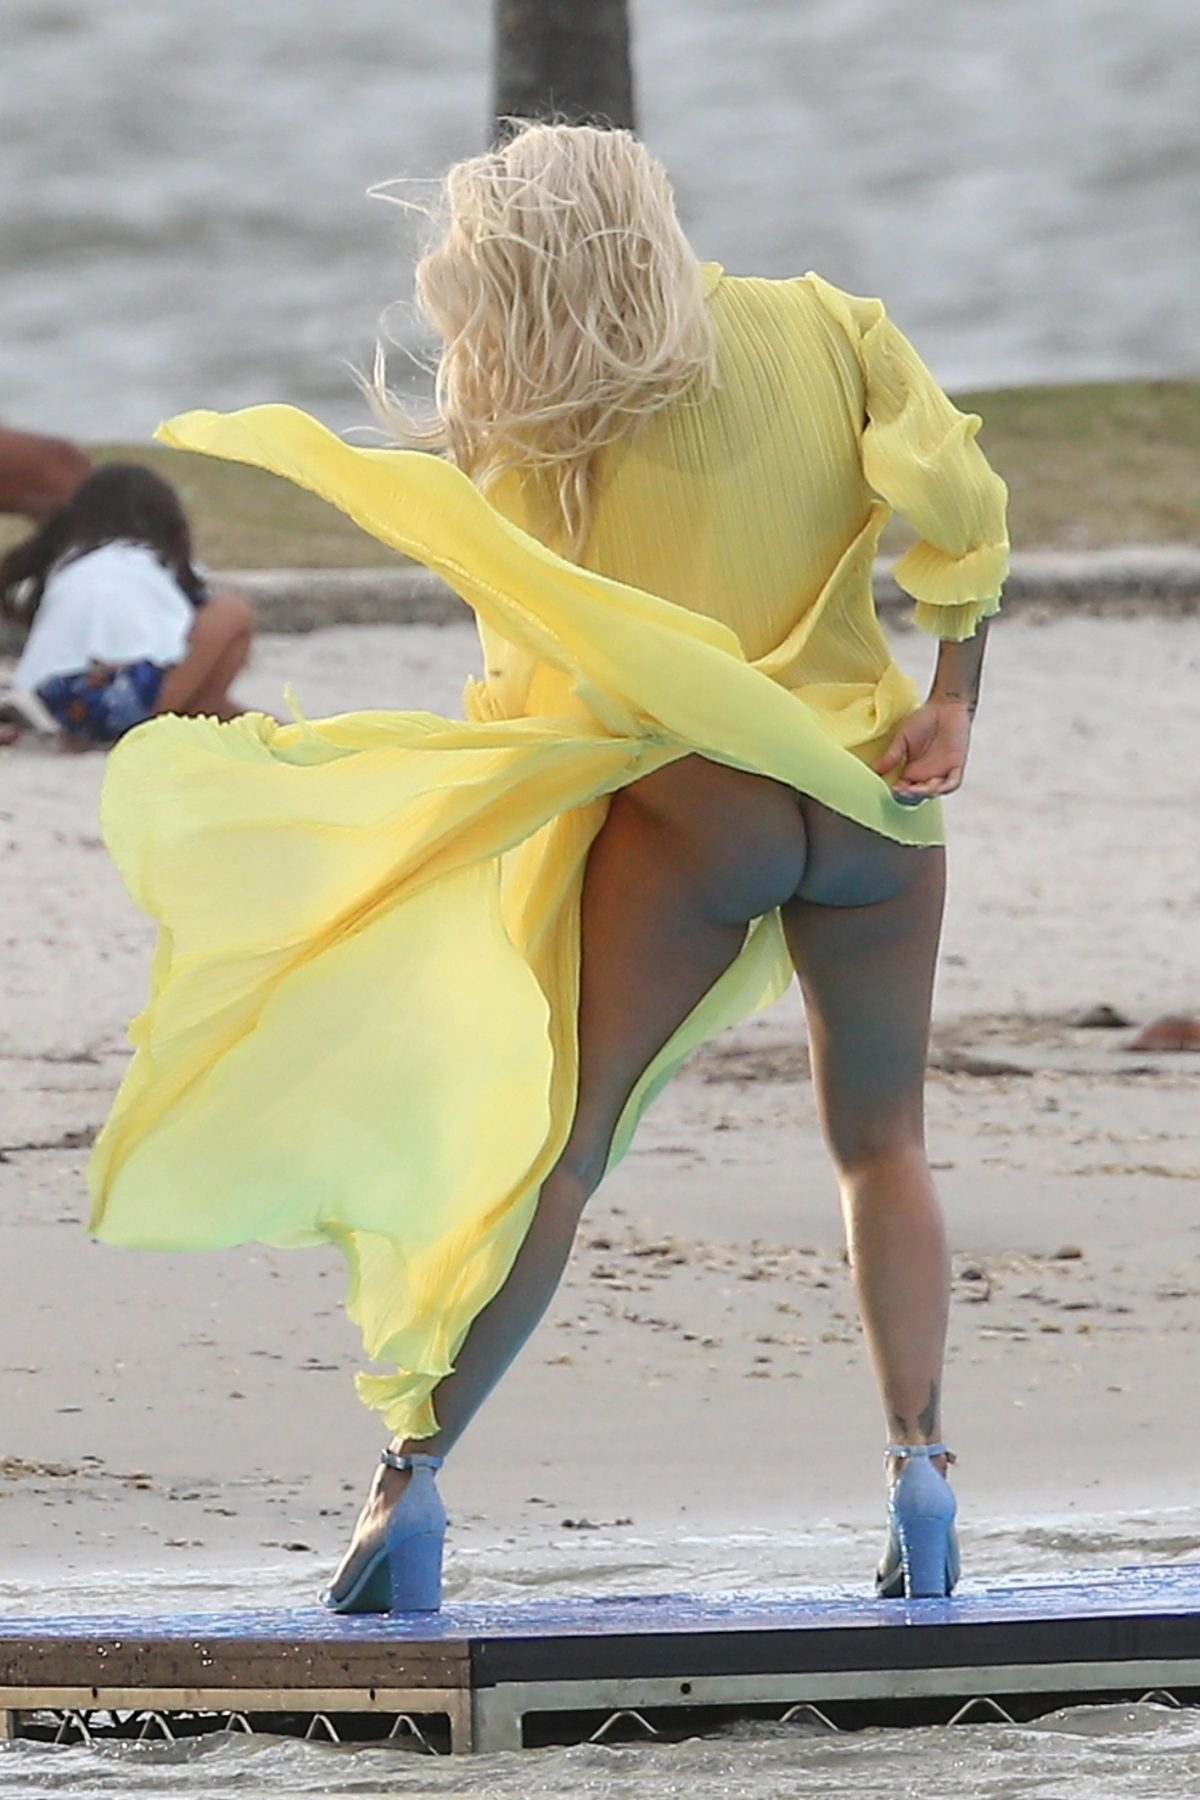 Rita Ora Ass Upskirt on the Set of a Music Video in Miami